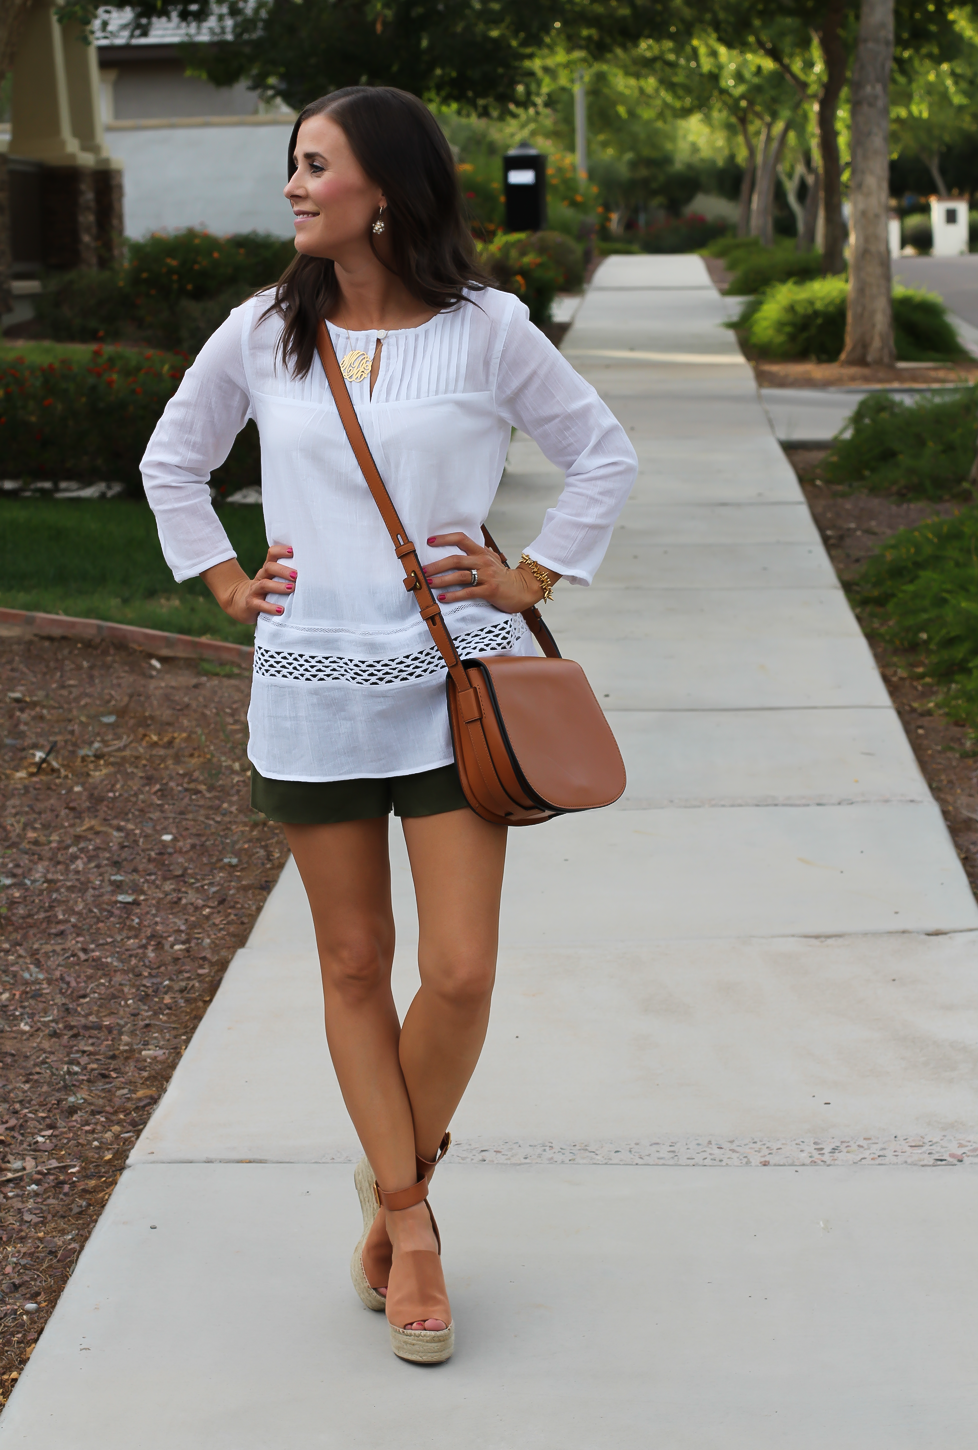 Gauze White Lace Tunic, Green Linen Shorts, Brown Suede Espadrilles, Brown Leather Crossbody Bag, Old Navy, J.Crew, Chloe, Tory Burch 12